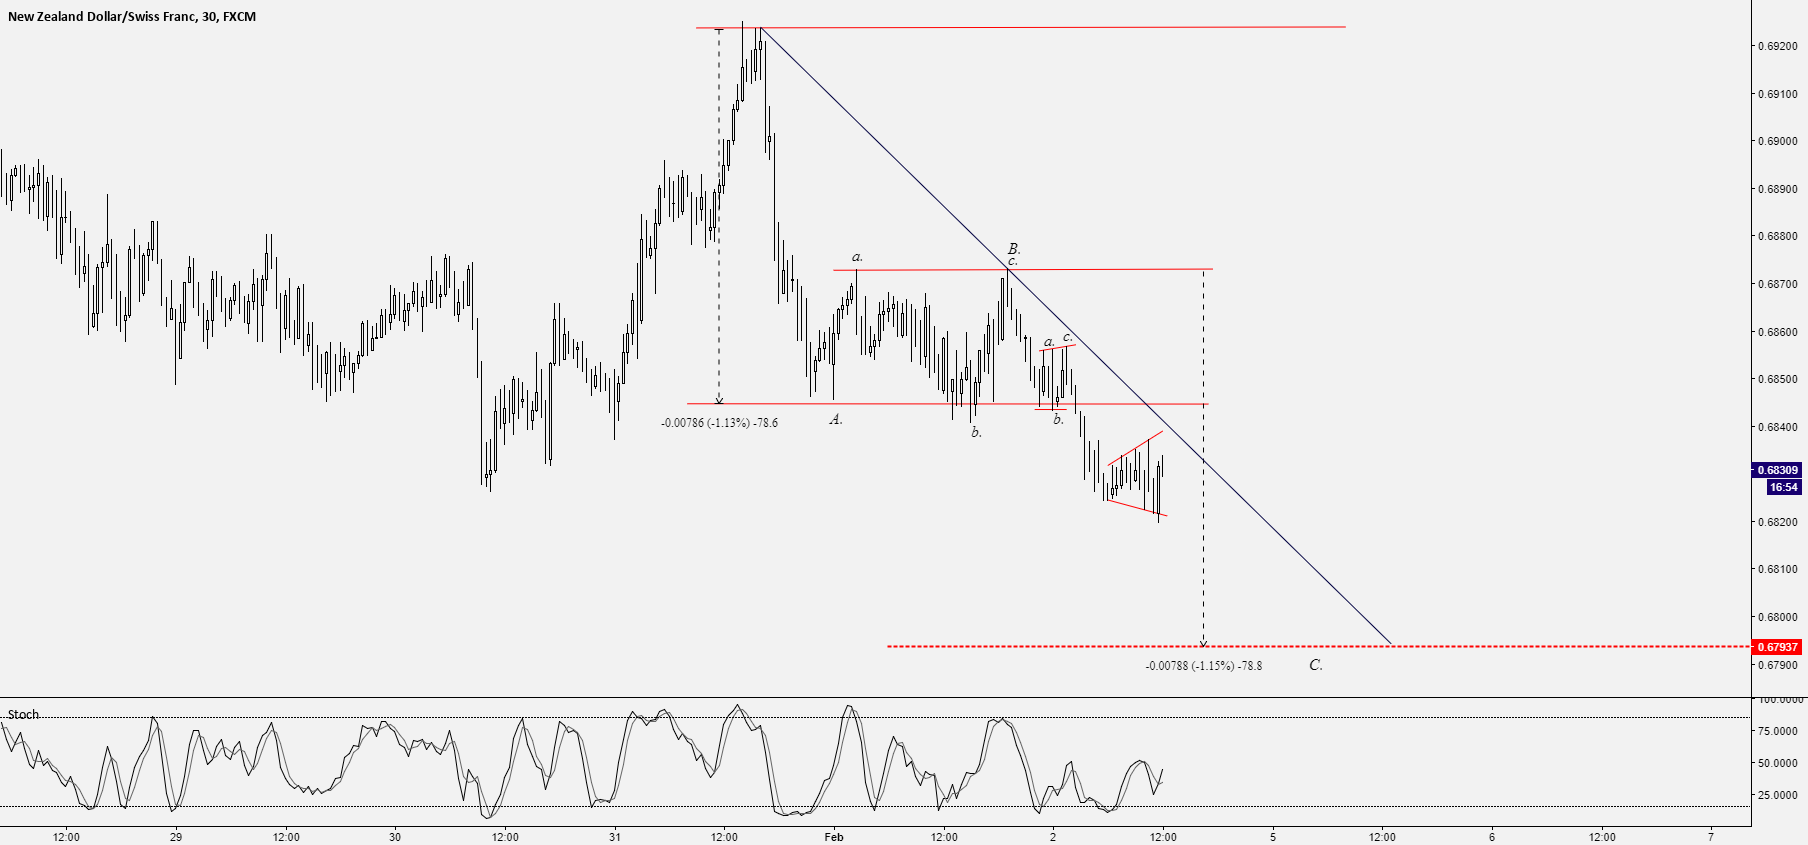 NZD/CHF - EXPANDING TRIANGLE IN PLAY